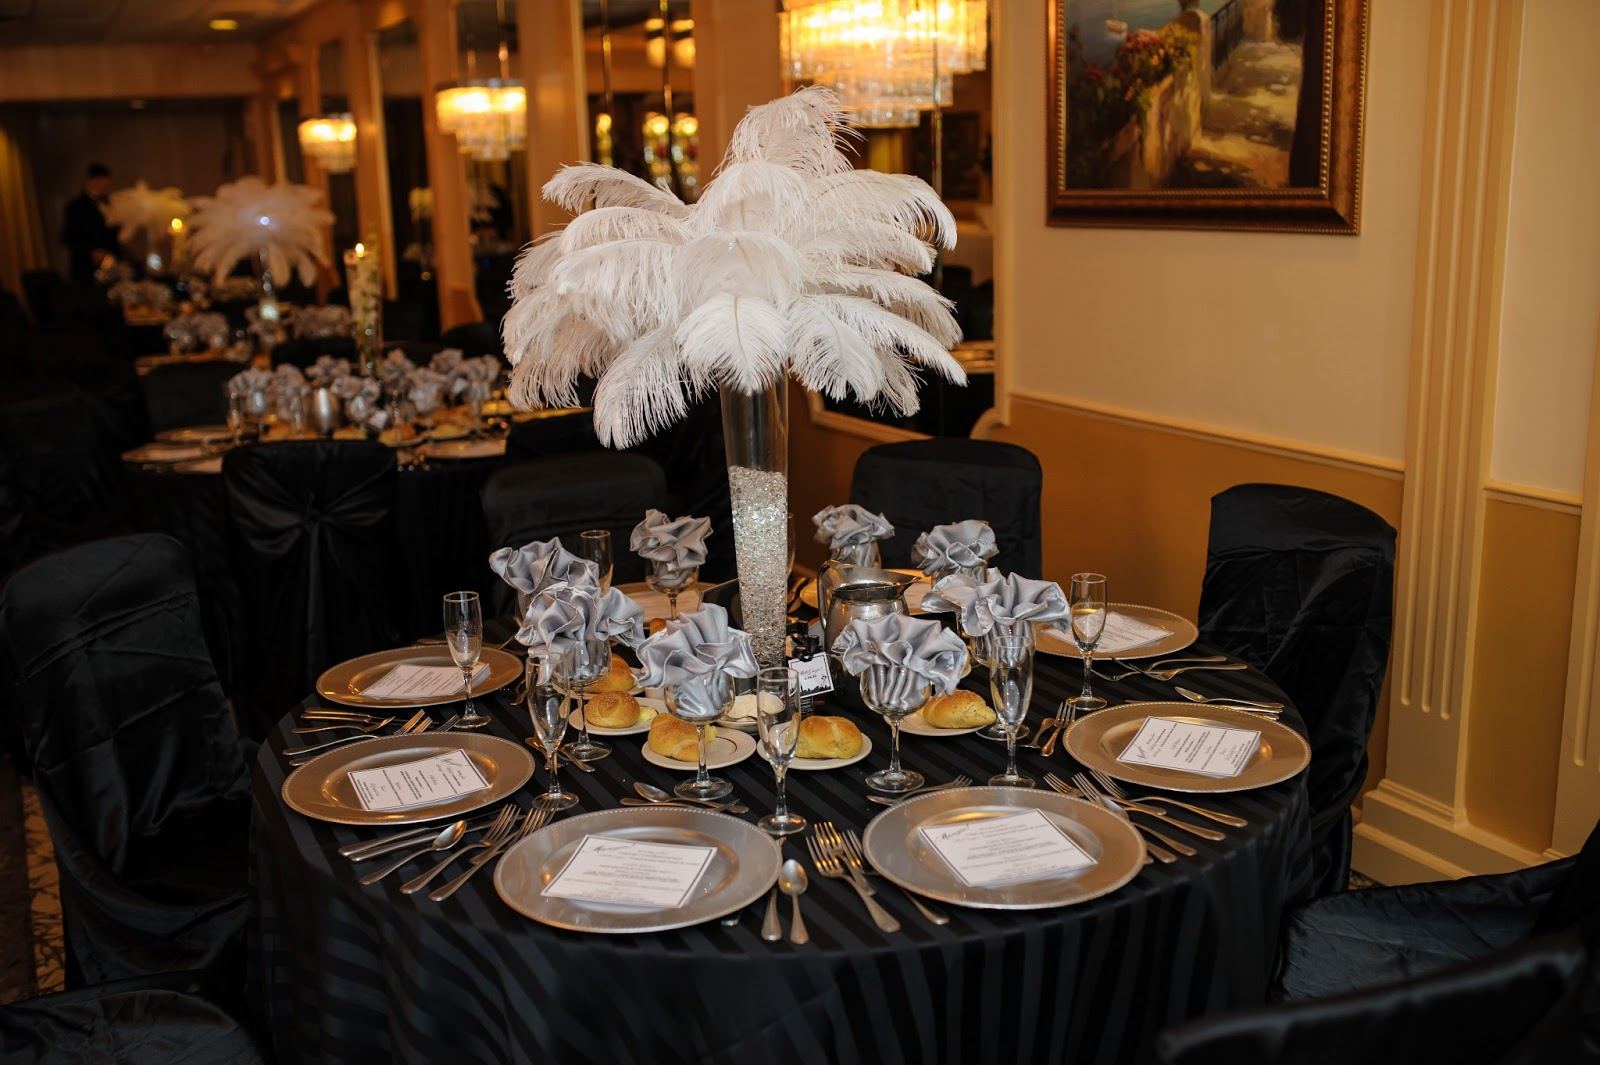 Fall Centerpieces With Feathers Catherine Scerbo Events 70 Years Young Frank Sinatra At